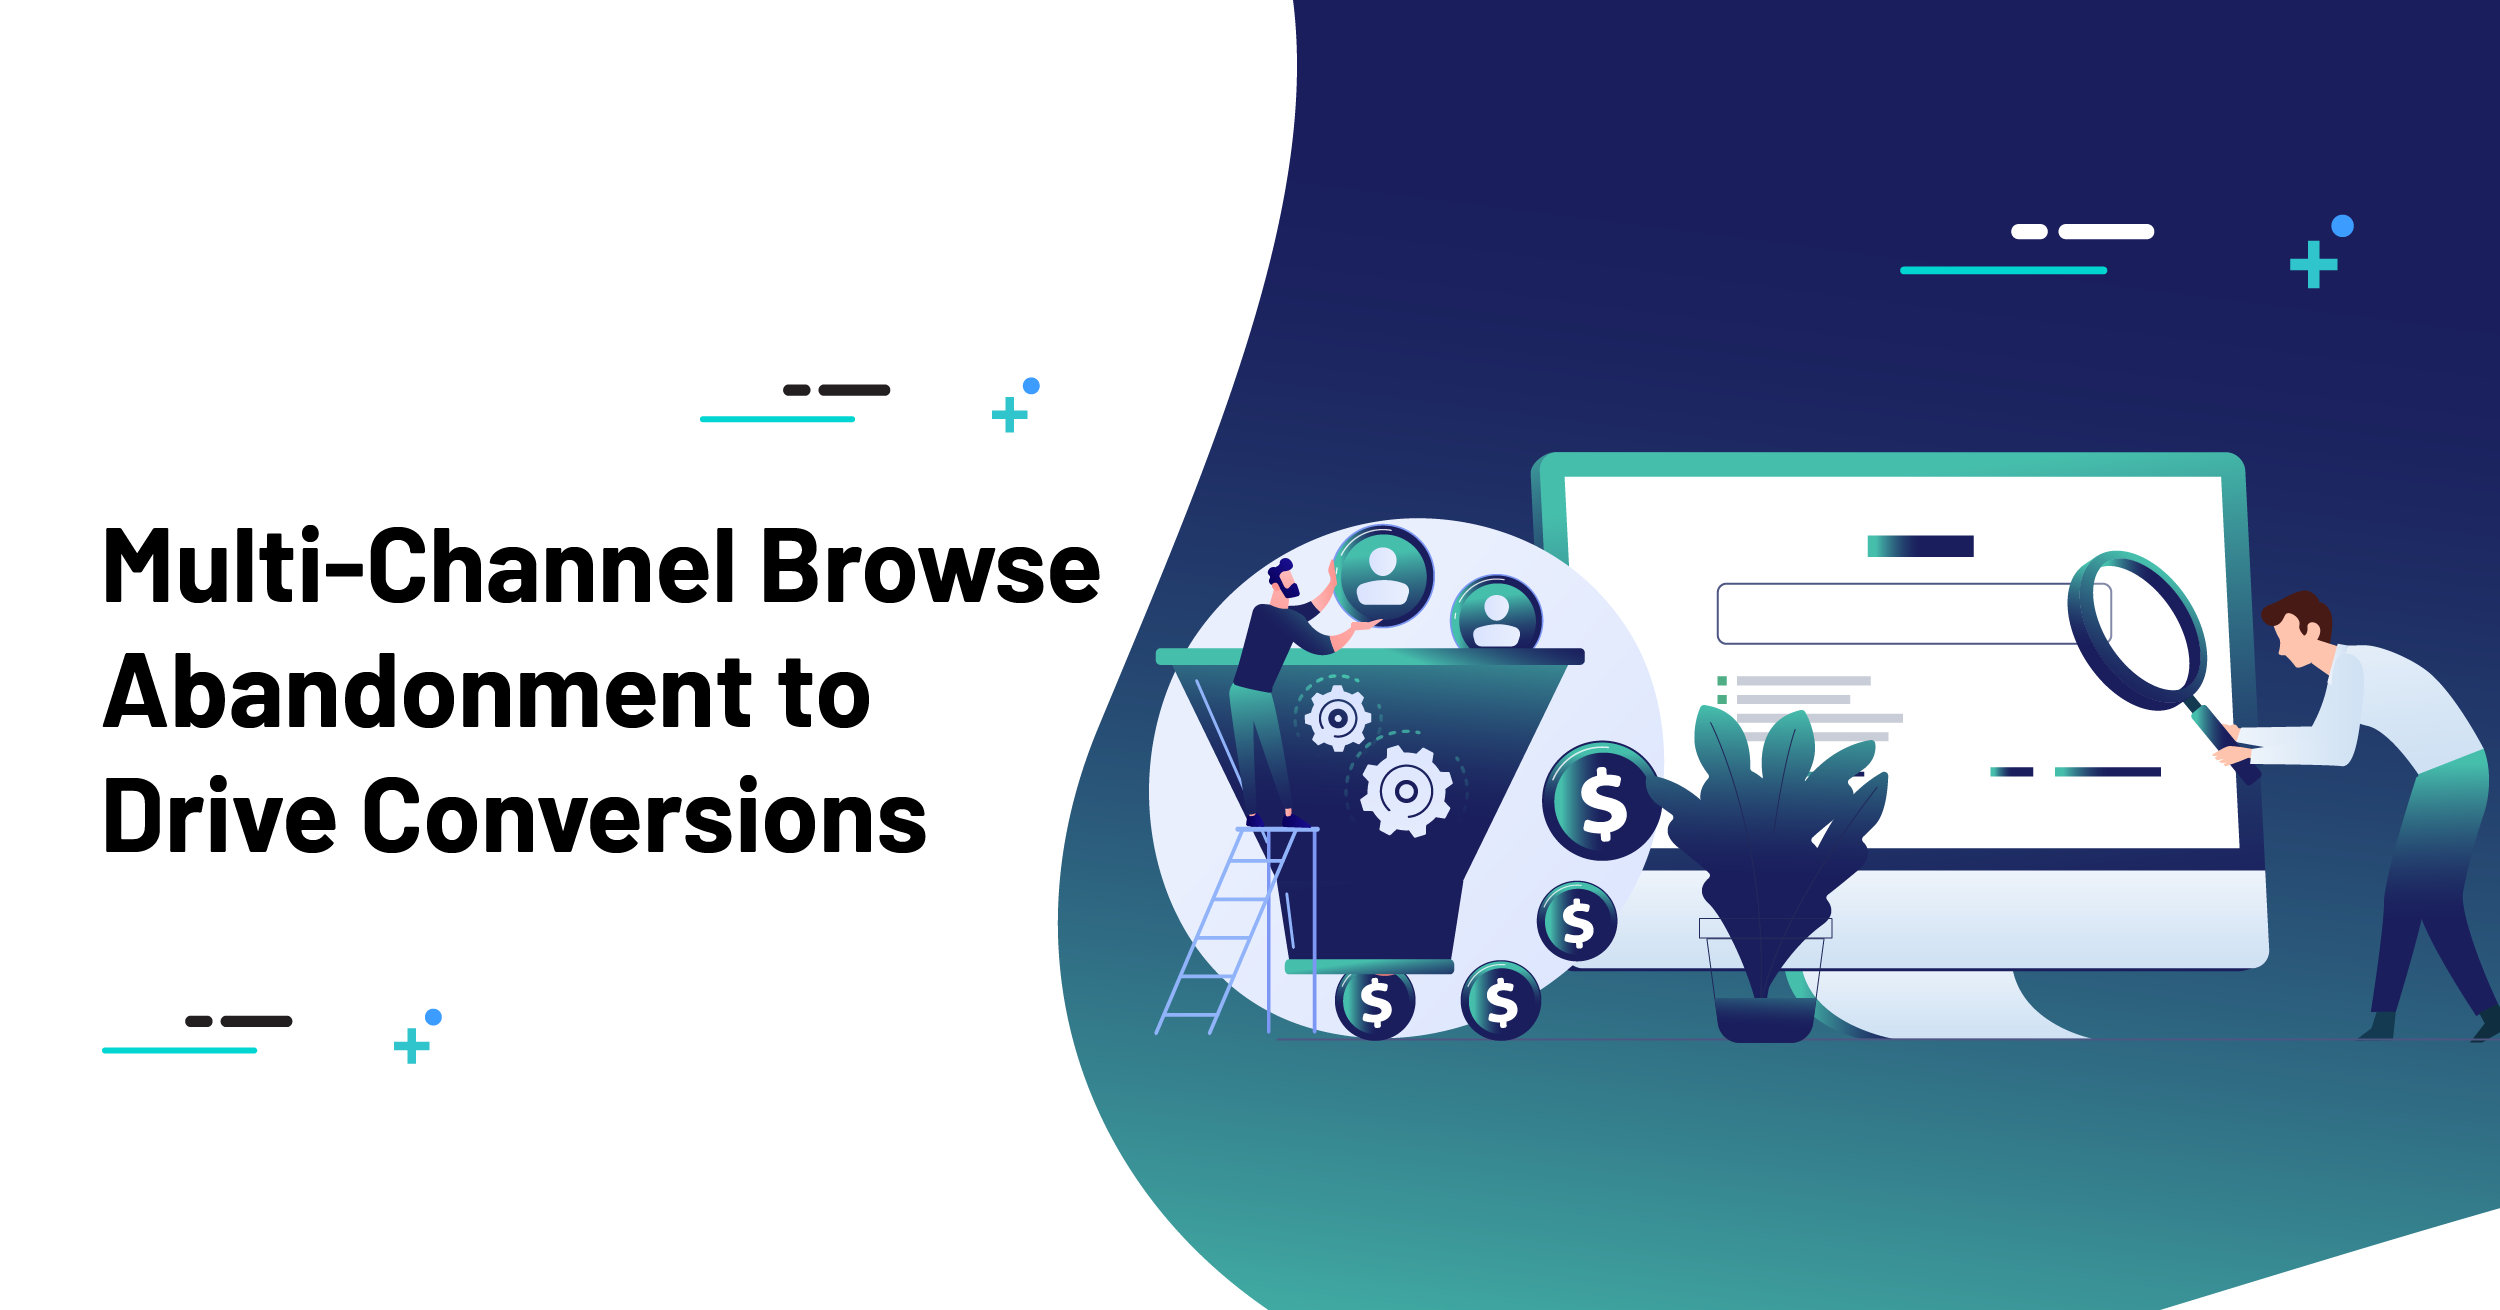 Multi-Channel Browse Abandonment to Drive Conversions